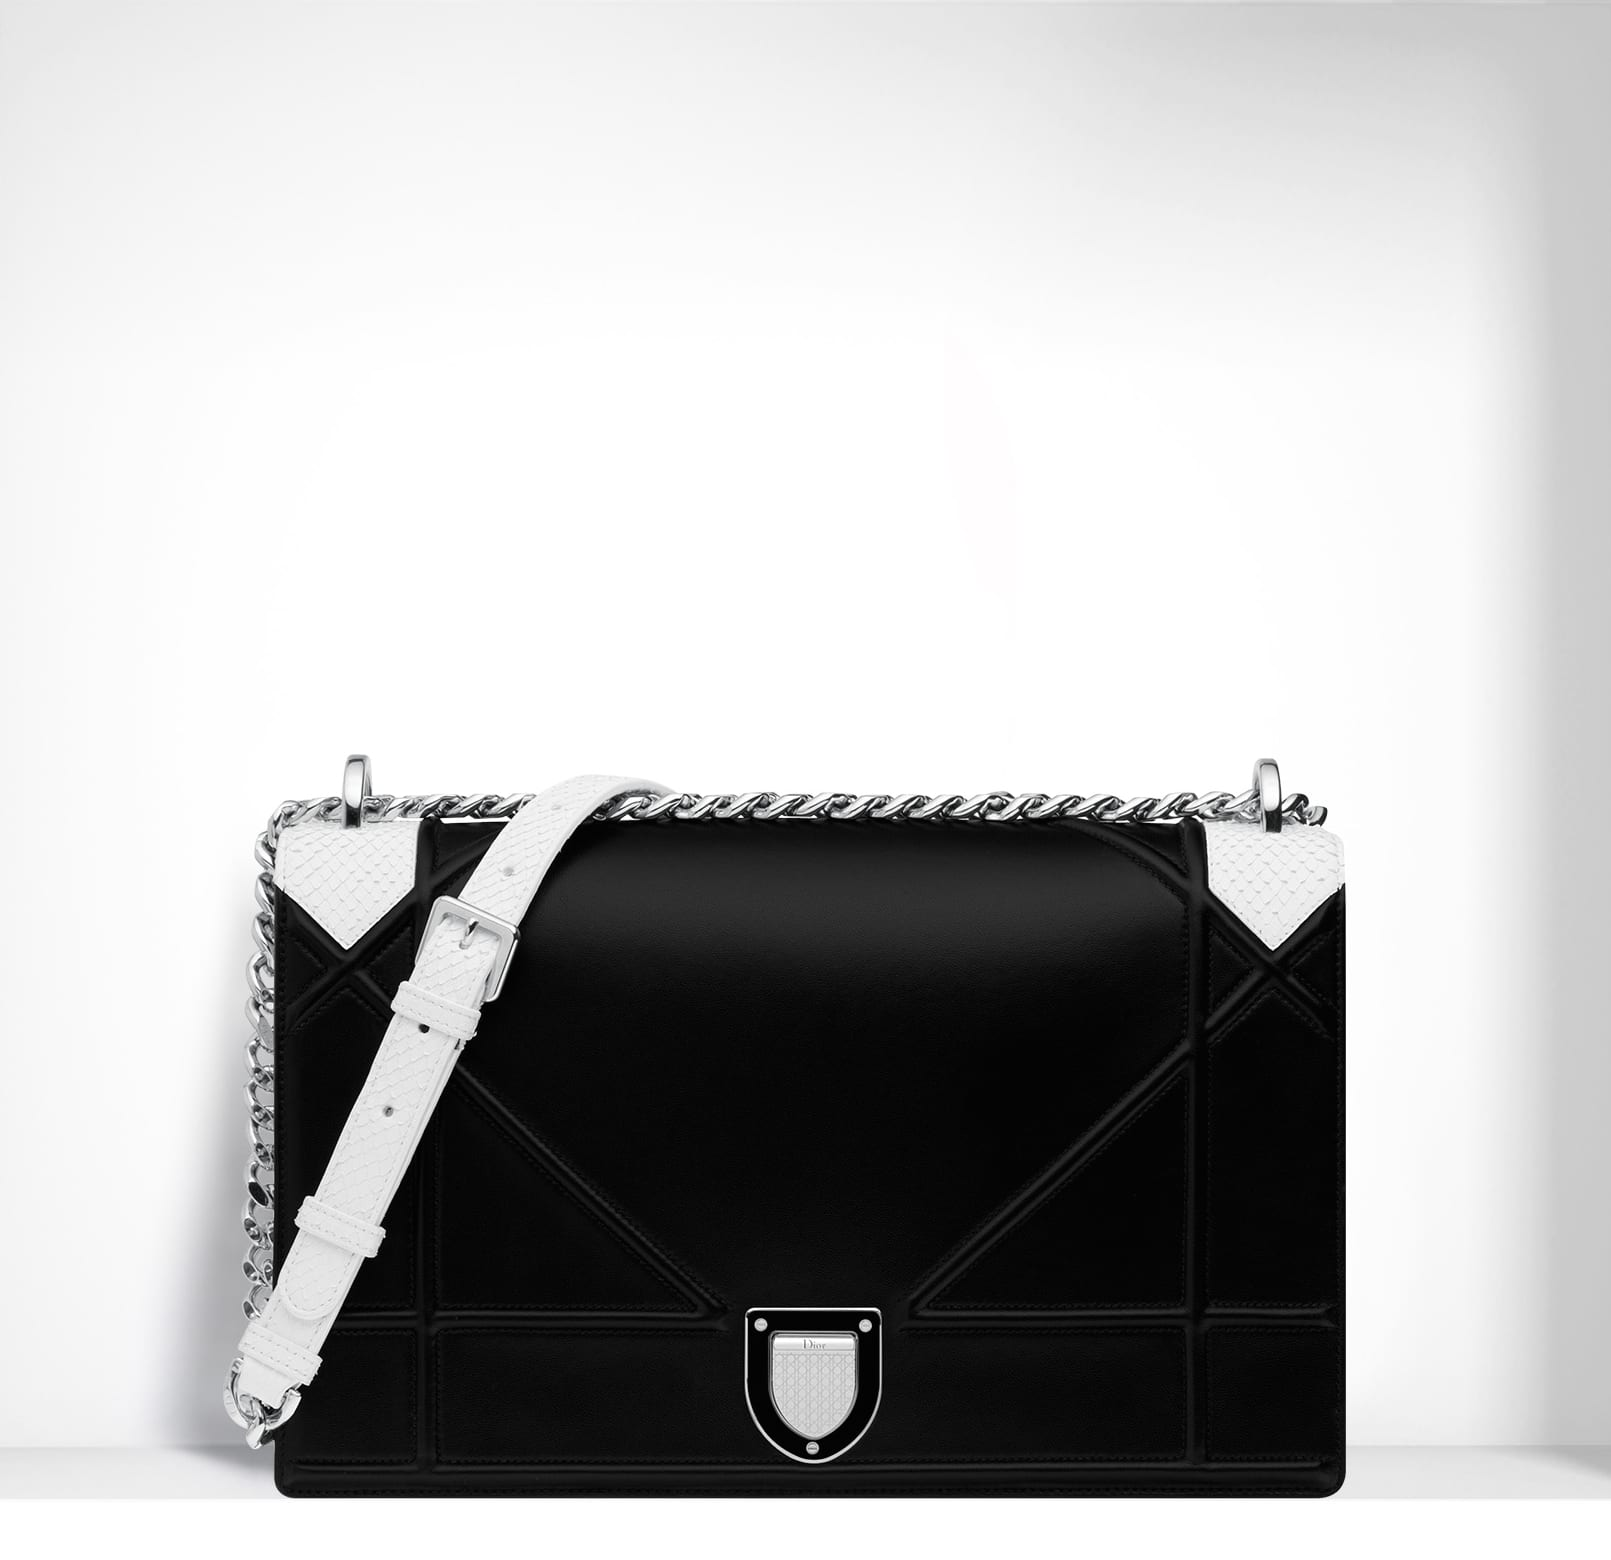 Dior Black White Python Lambskin Diorama Large Flap Bag 36c0258cd4775